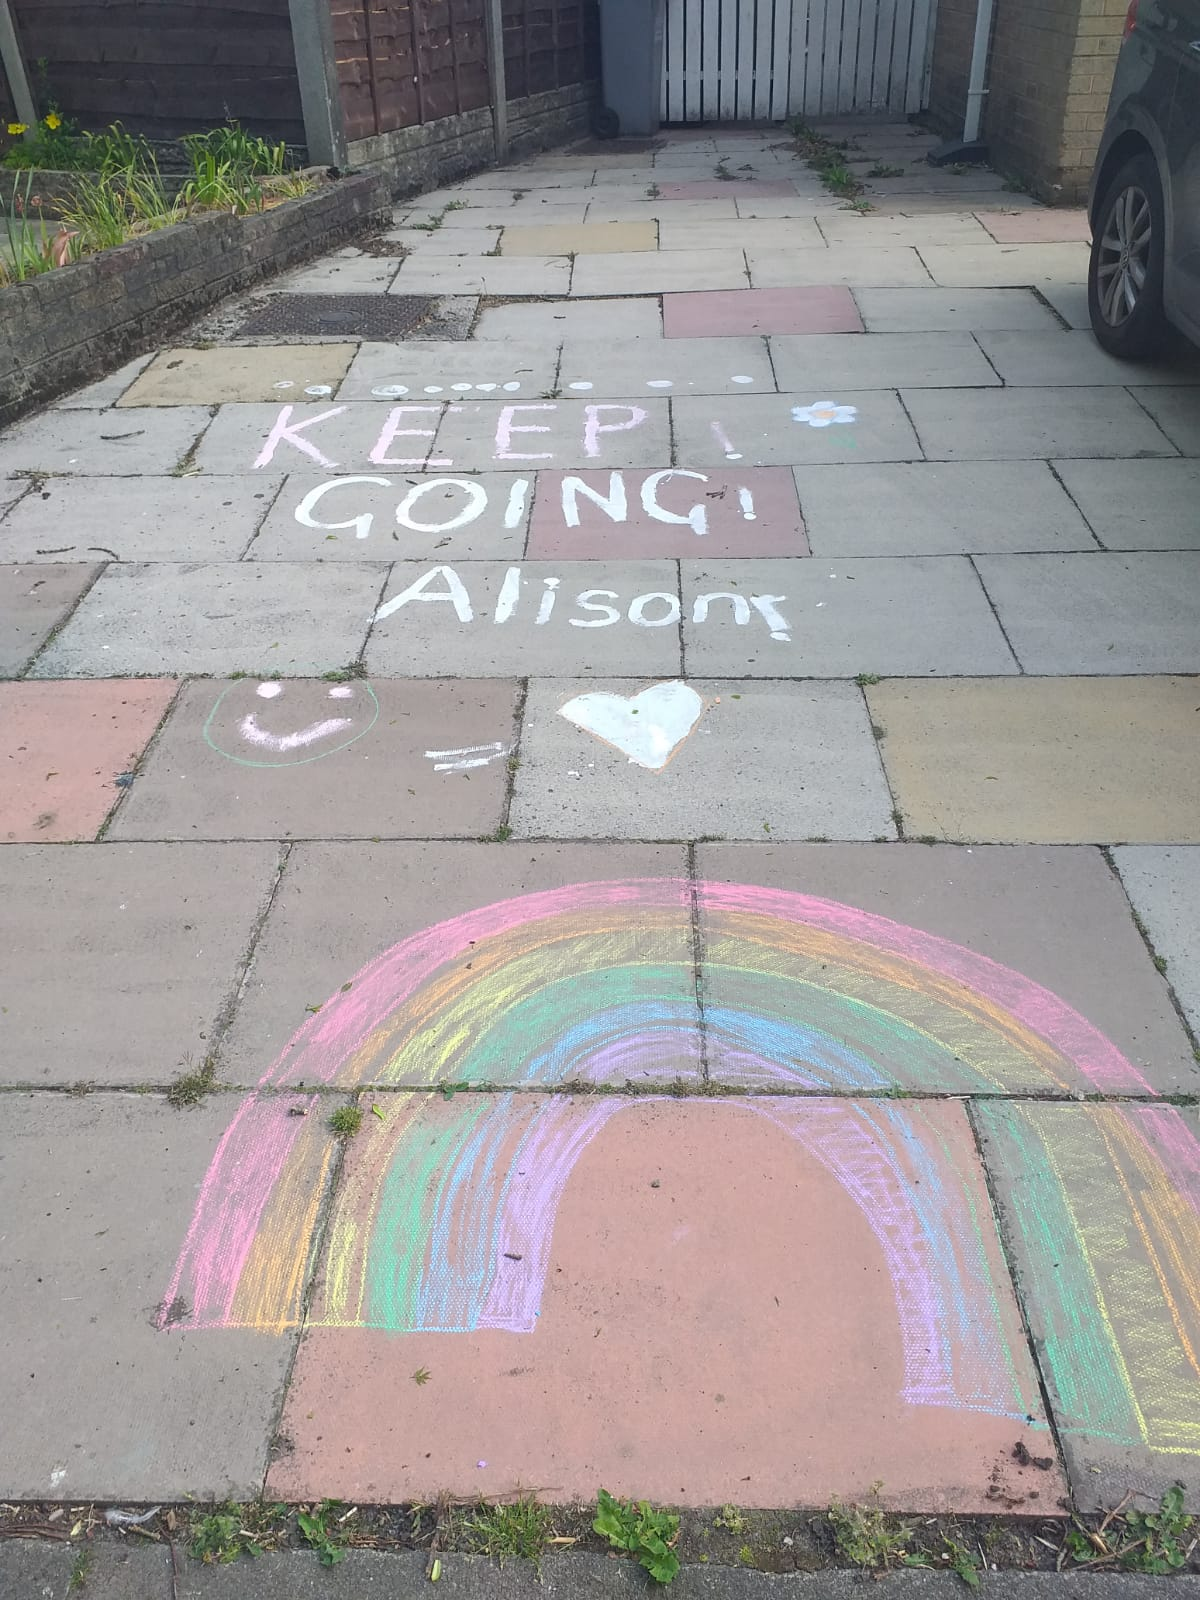 Keep going Alison